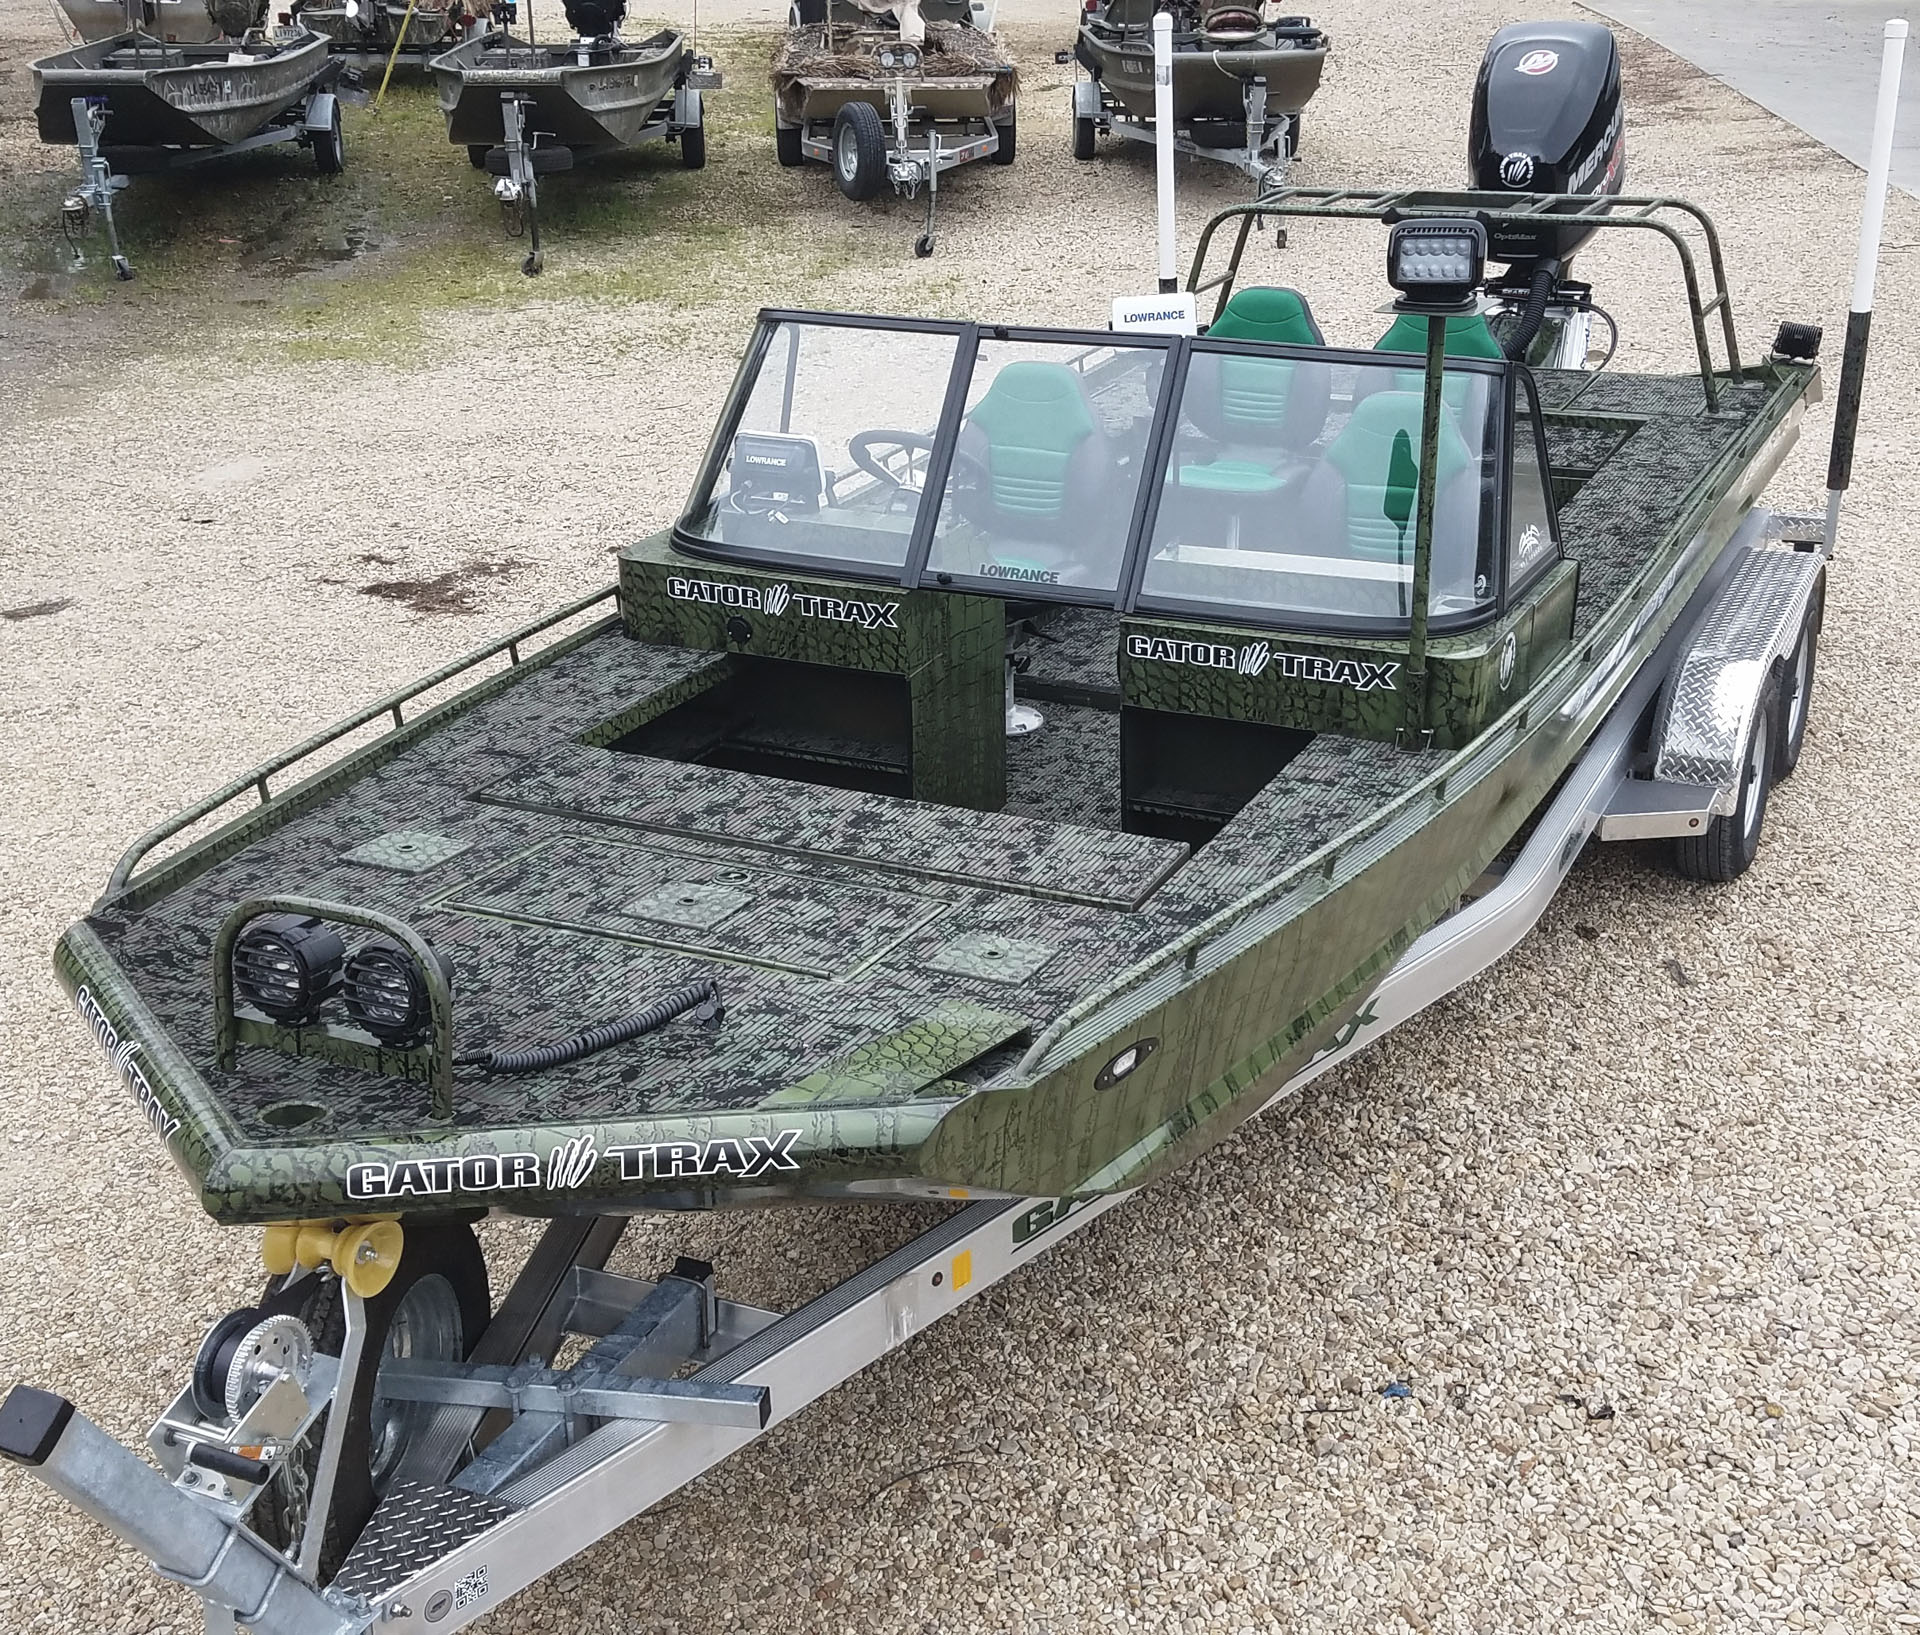 MudbuM Catfish Tournament Boat built by Gator Trax Boats